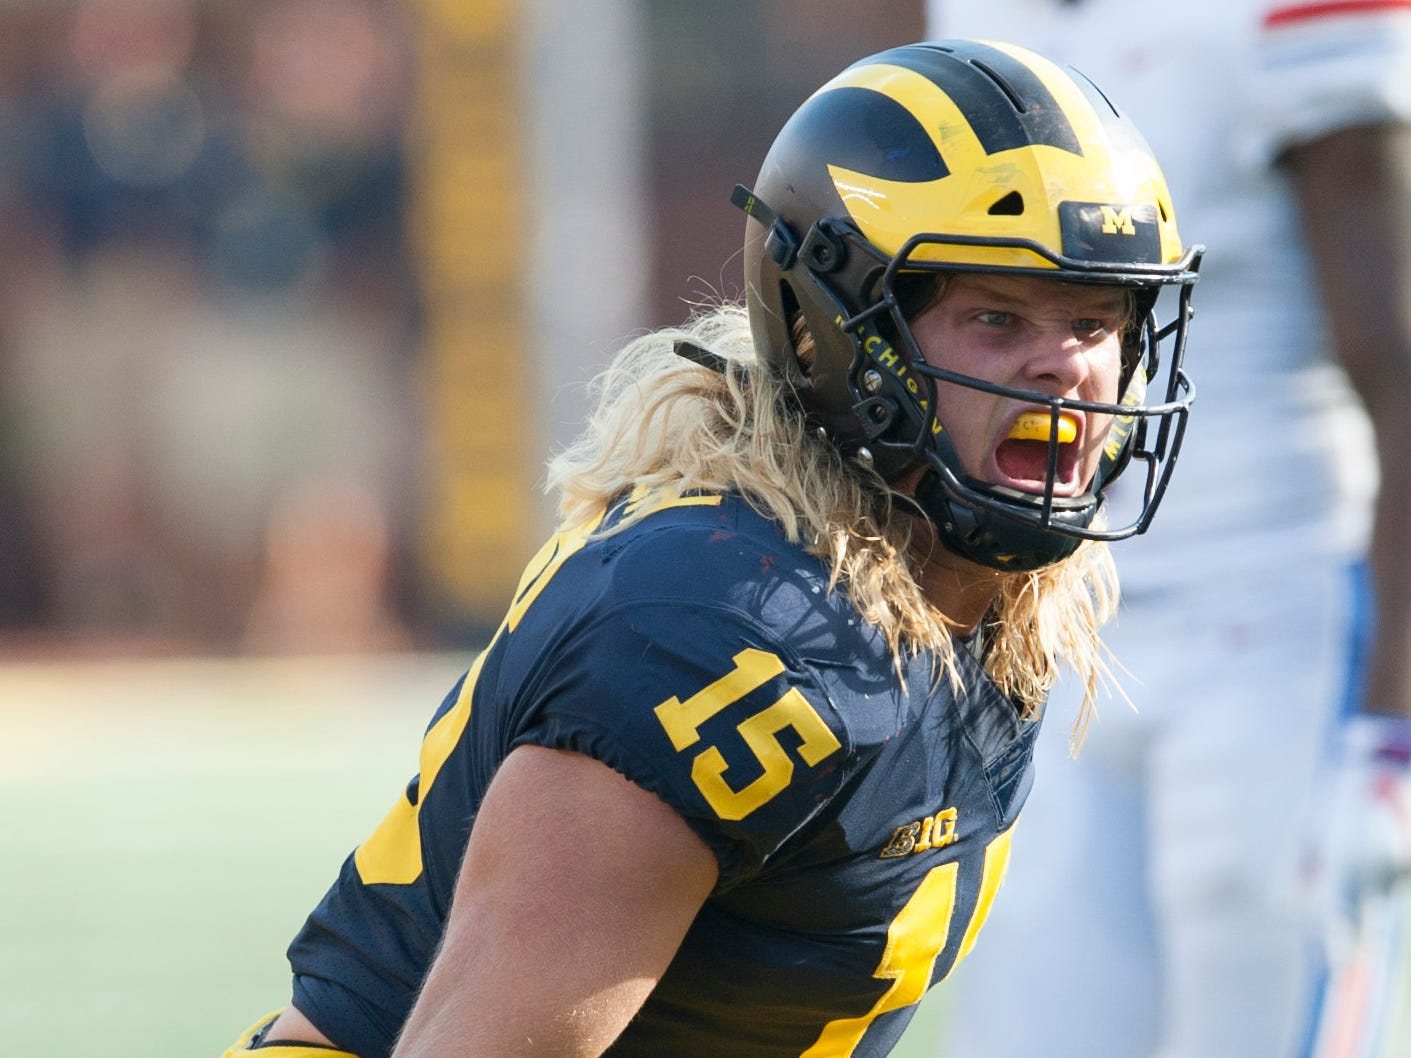 Michigan defensive lineman Chase Winovich celebrates a tackle-for-loss in the second quarter.